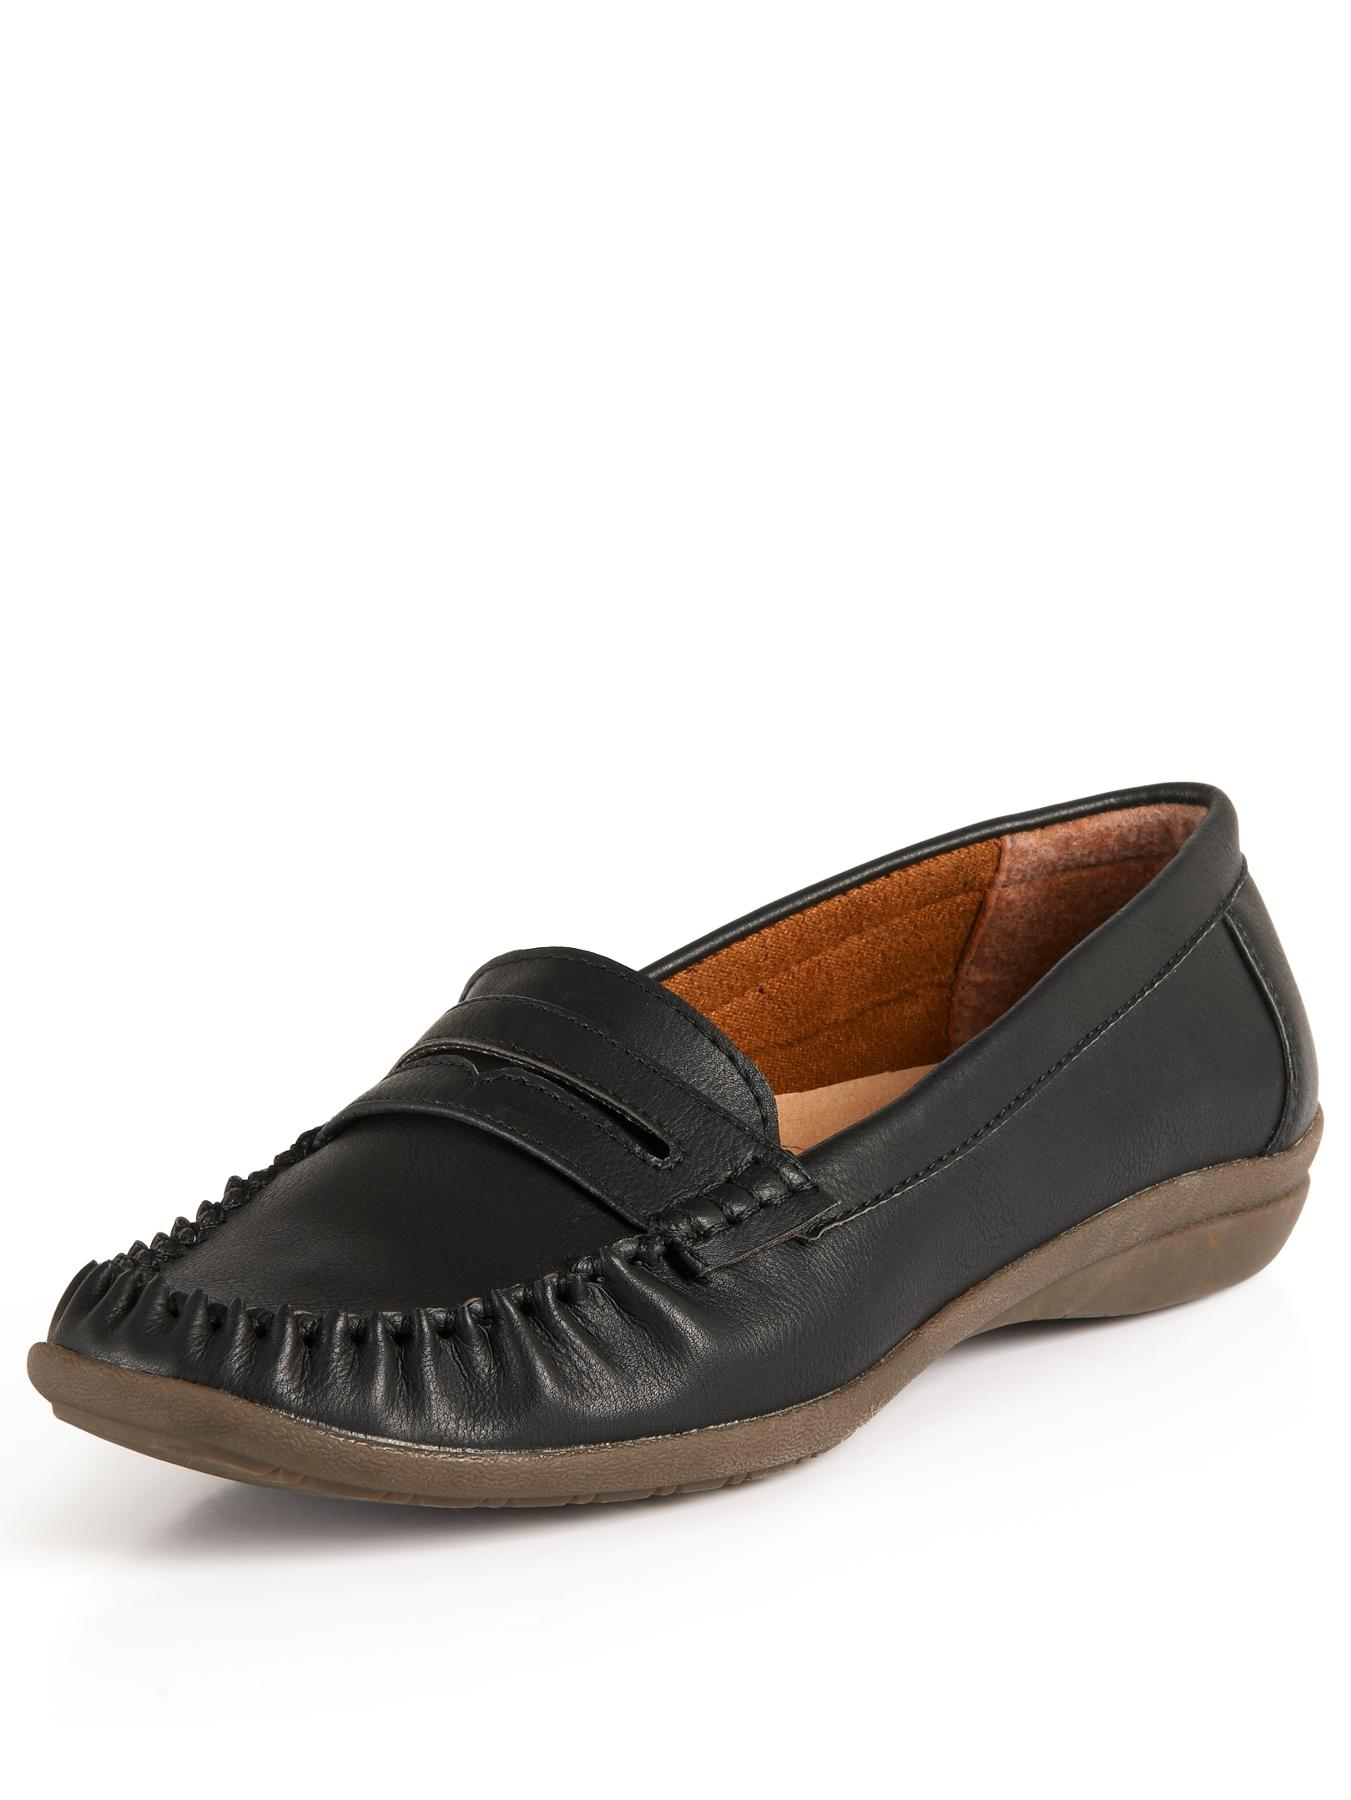 Foot Cushion Josie Casual Comfort Loafers - Black, Black